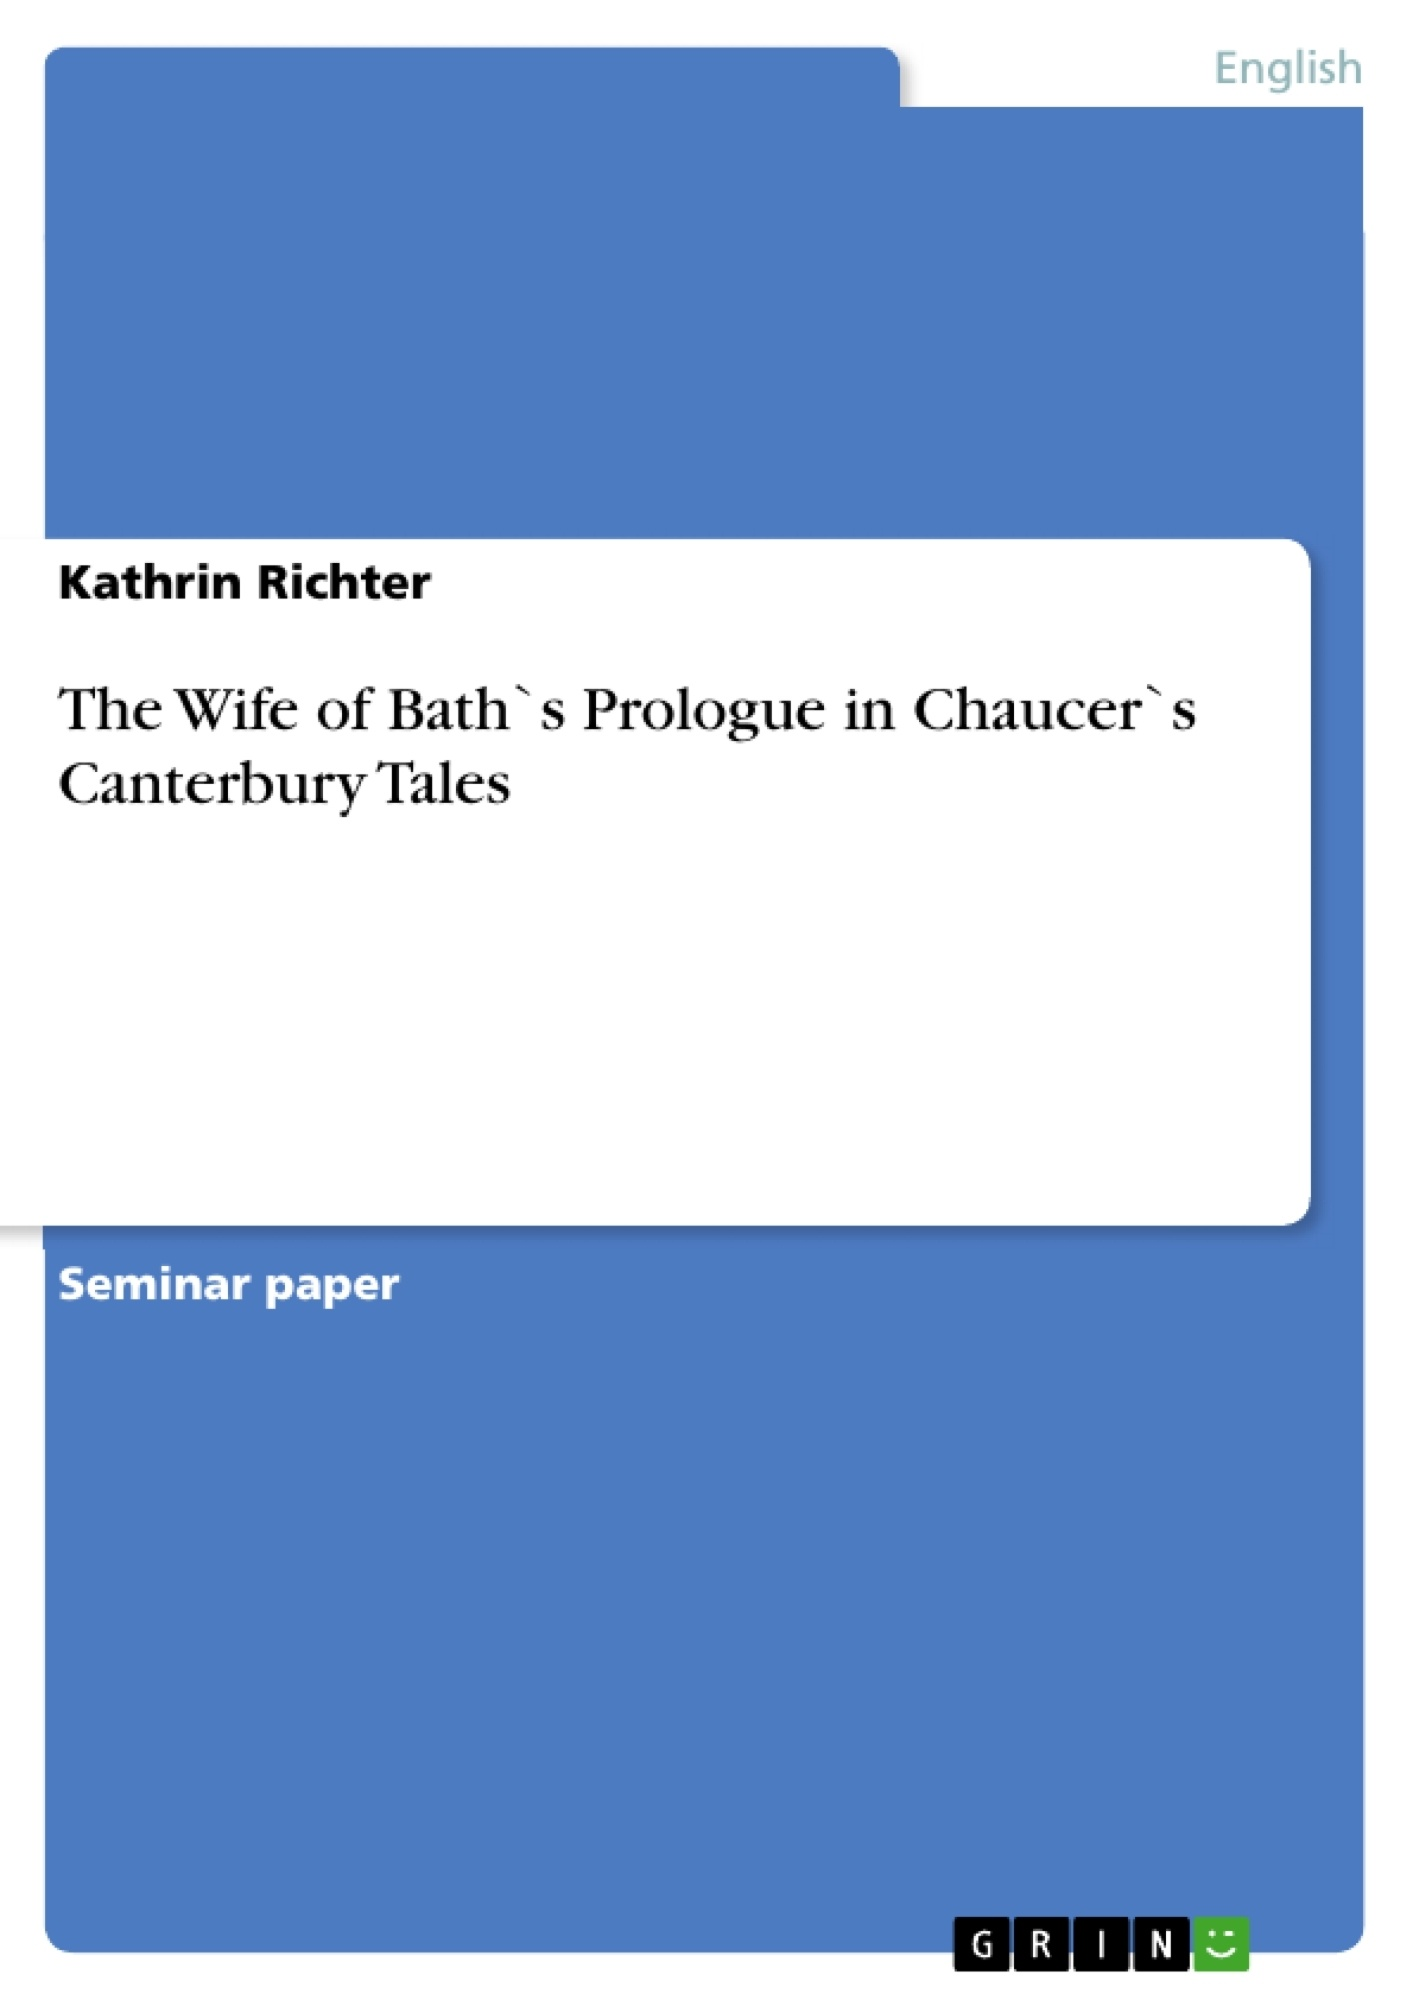 the wife of bath`s prologue in chaucer`s canterbury tales upload your own papers earn money and win an iphone 7